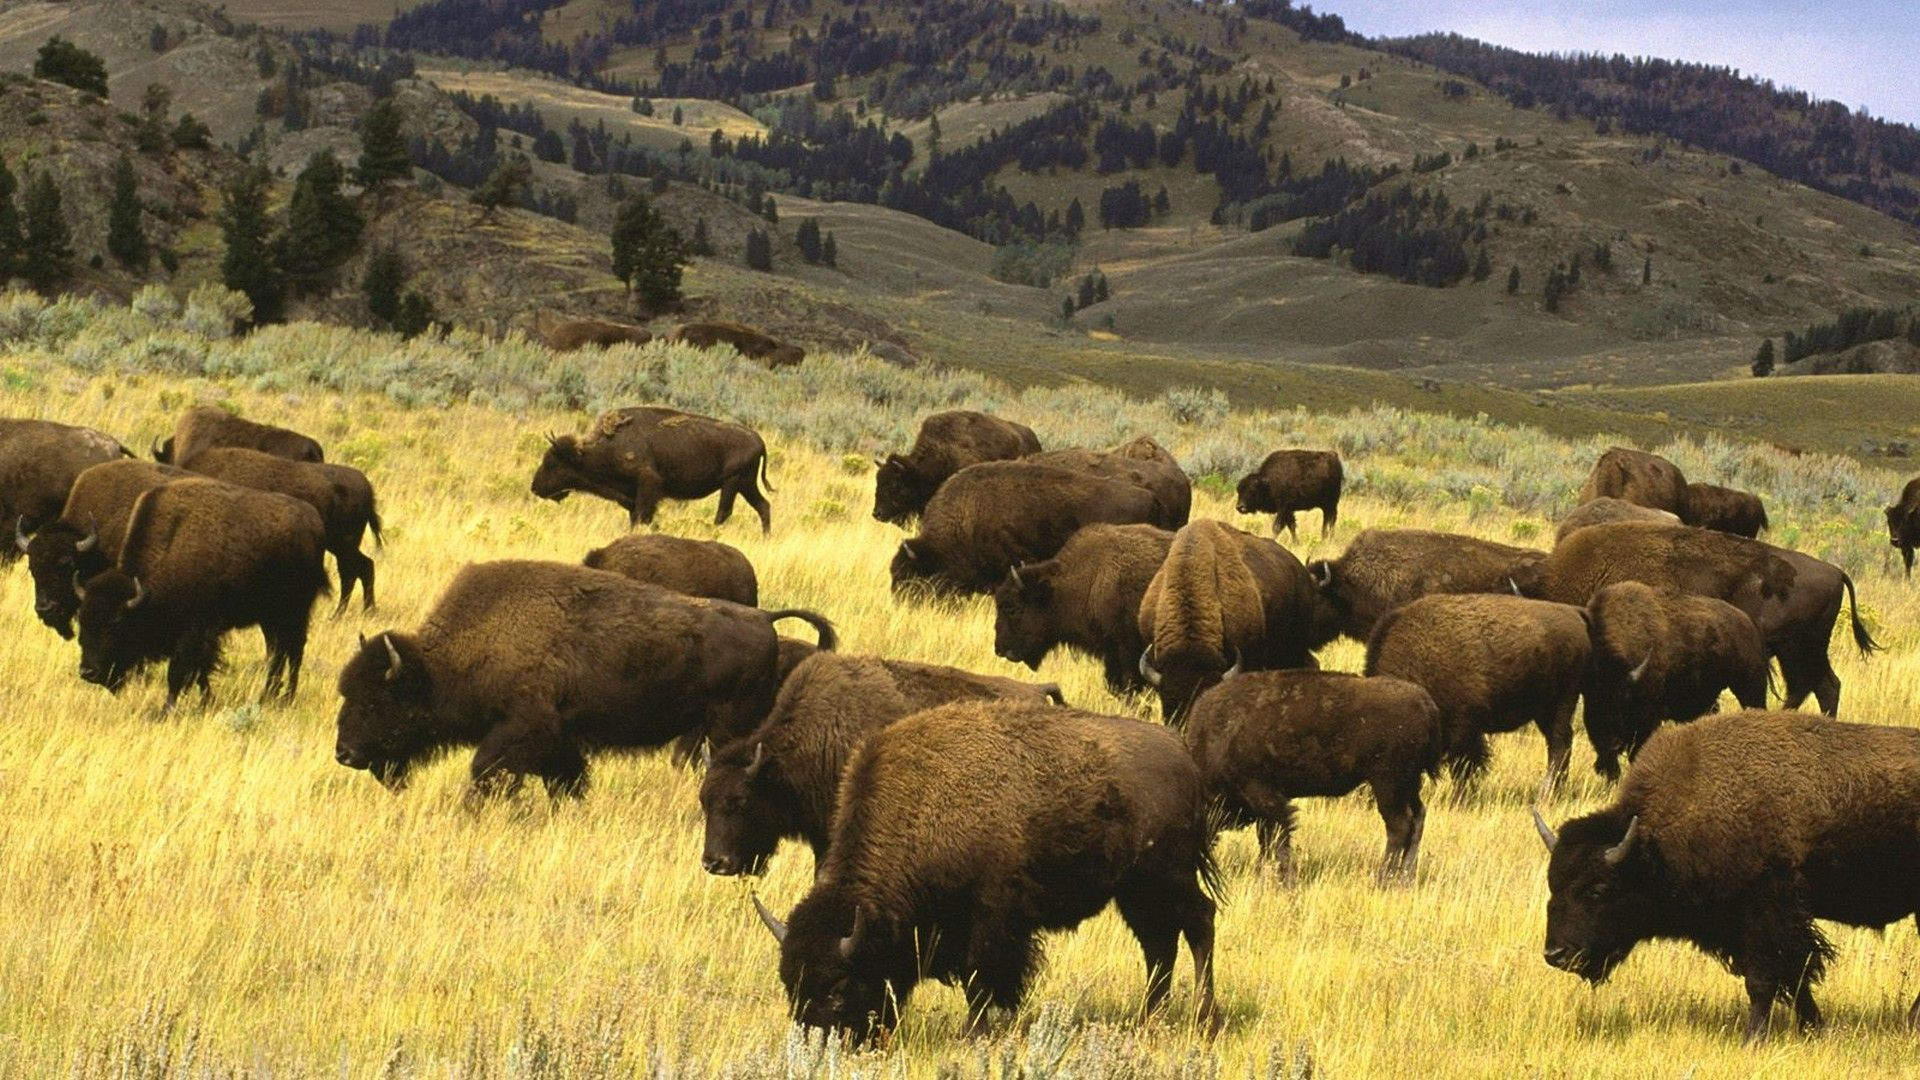 A Herd Of Bison Photo